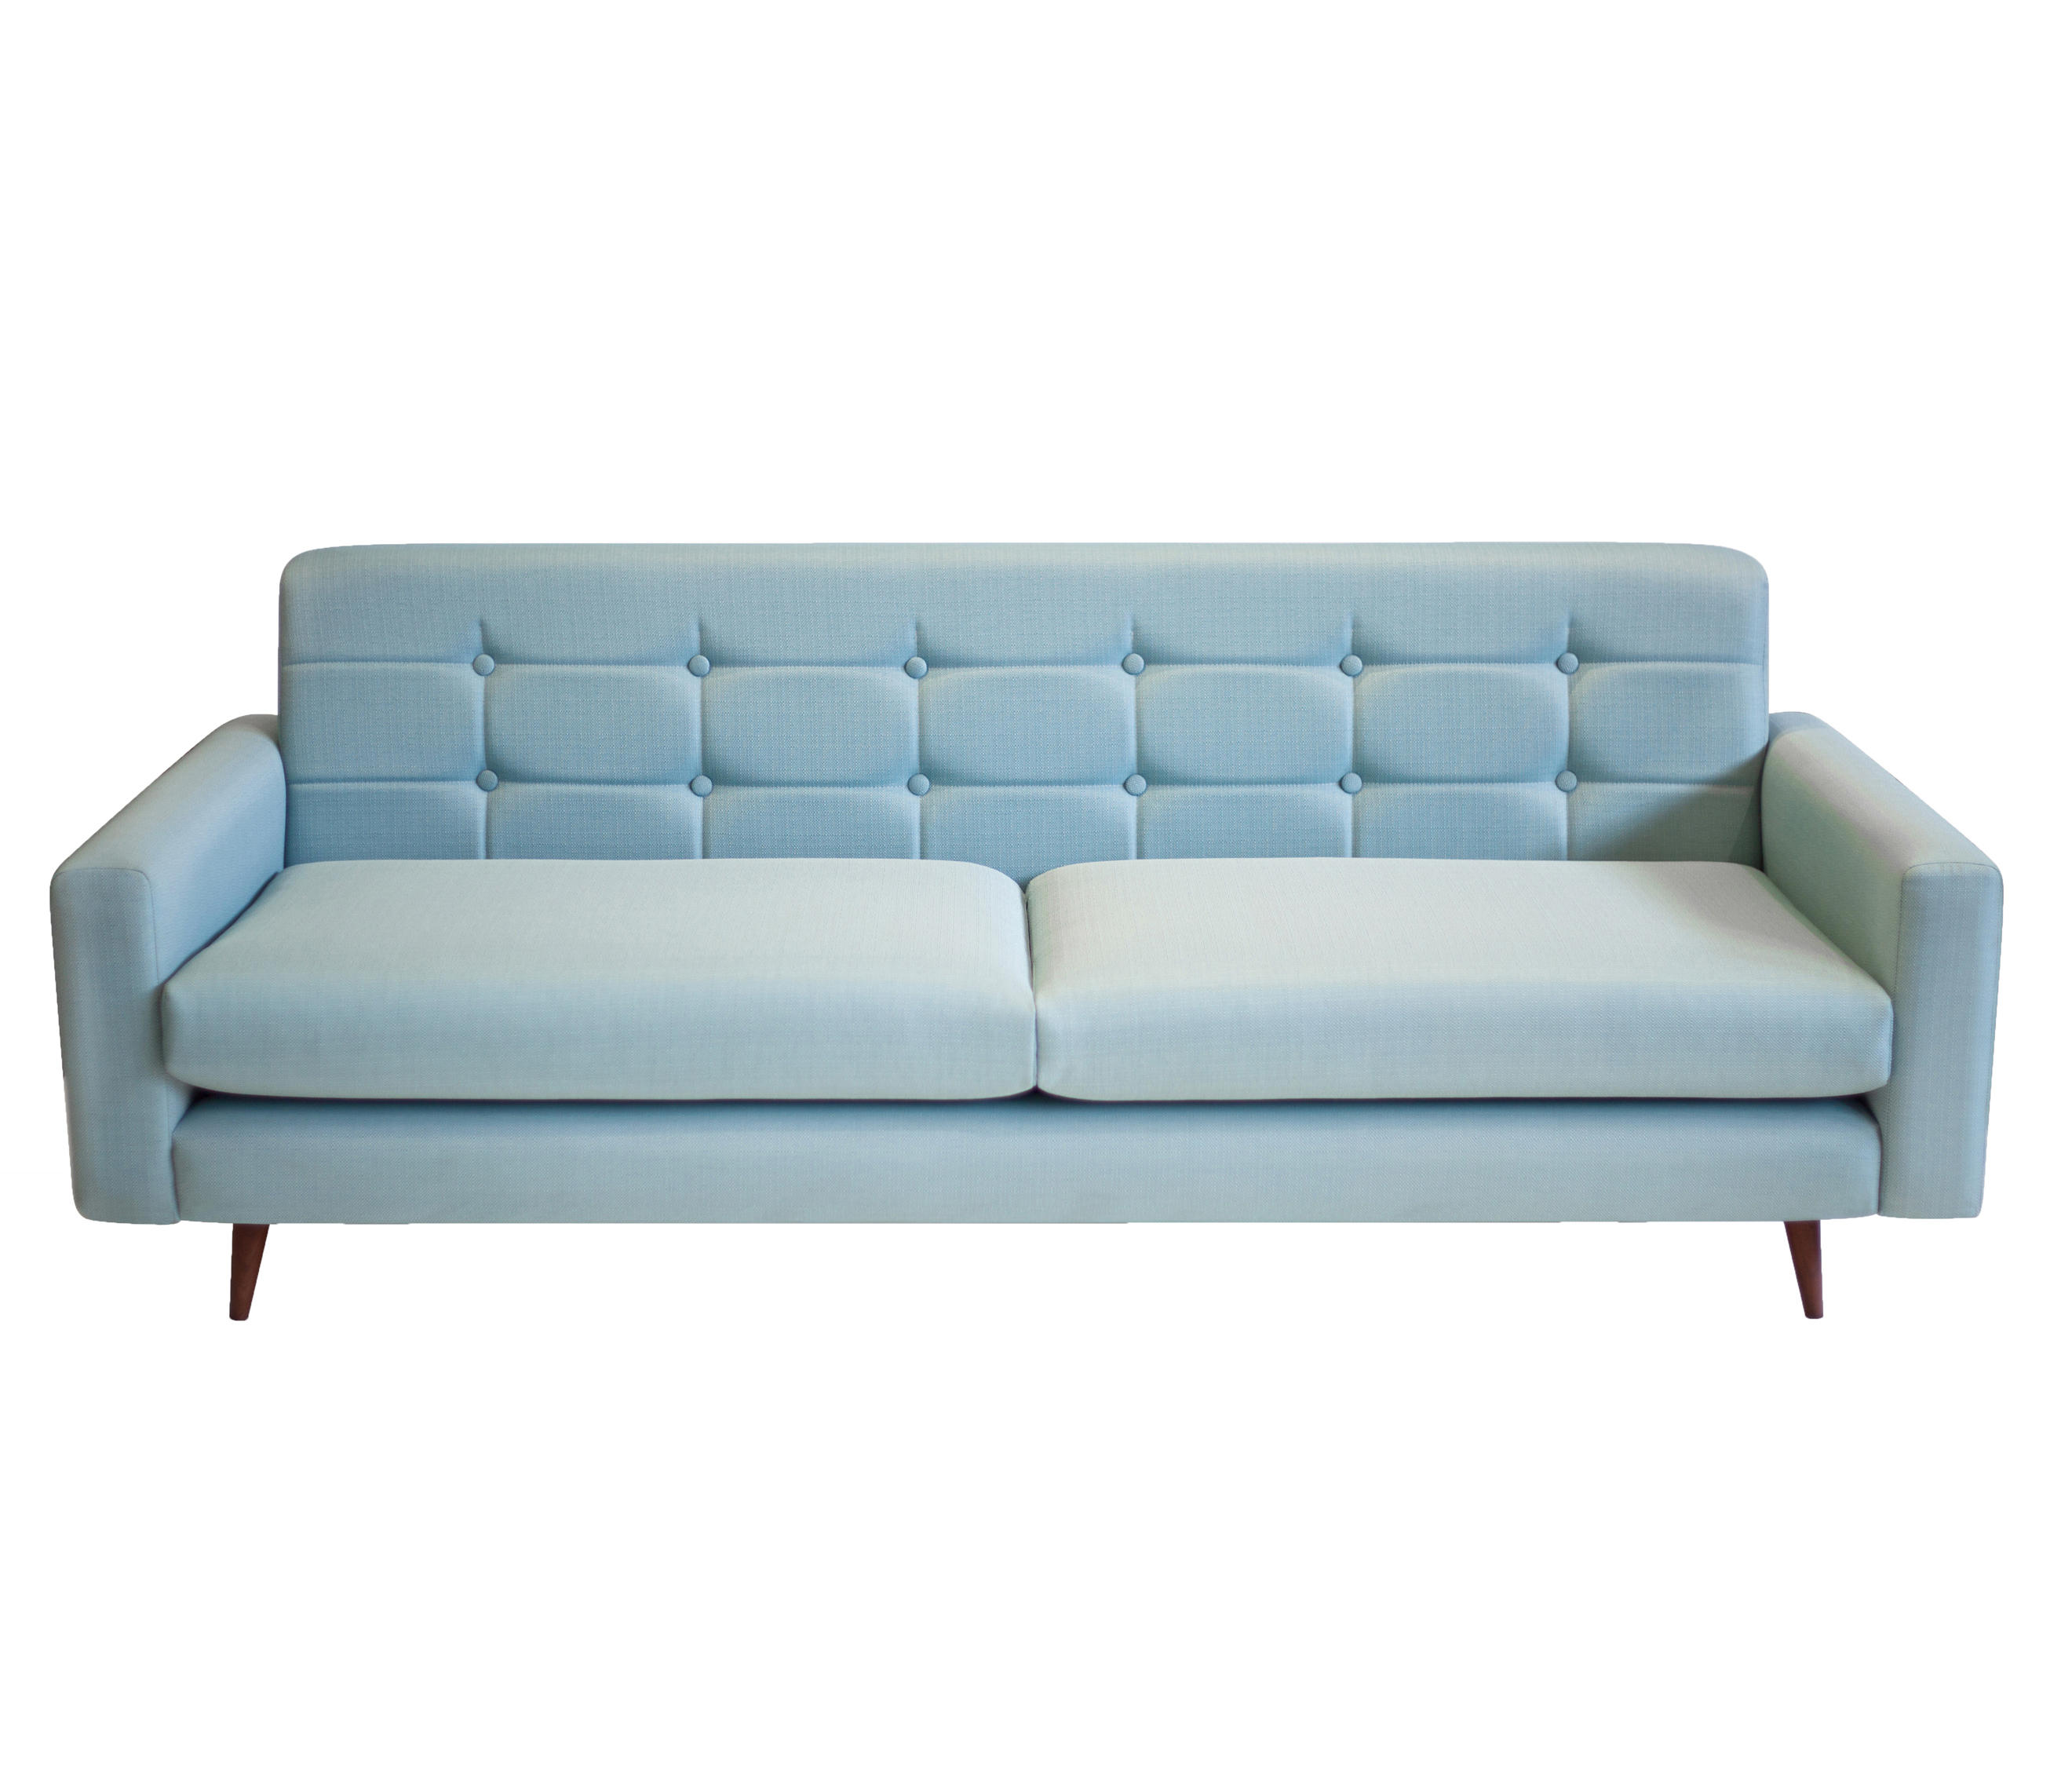 room and board chelsea sofa chesterfield green sofas trend bright bold velvet the design